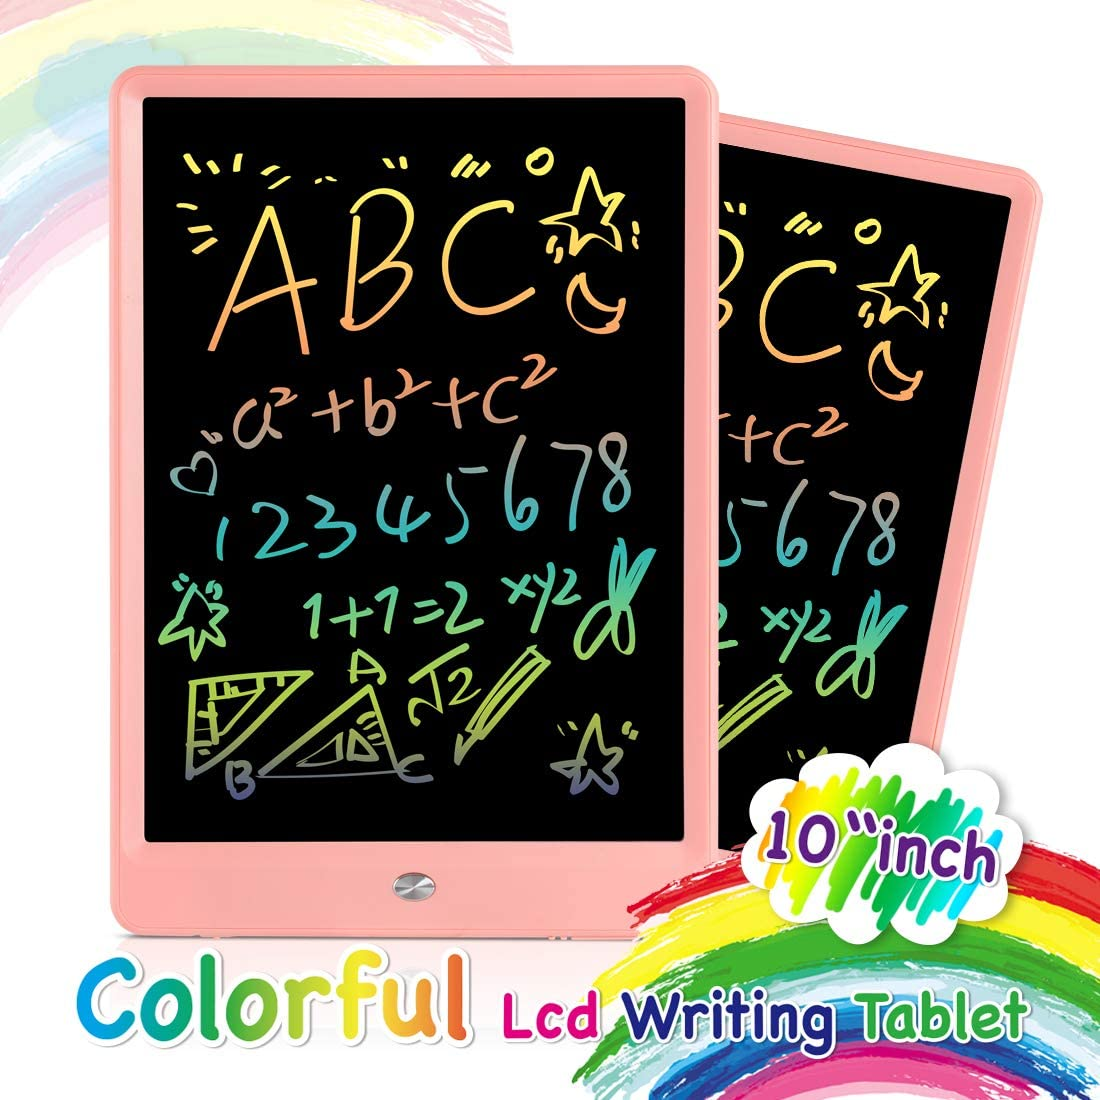 Electronic Pads Learning LCD Writing Tablet 10 Inch,Colorful Magnetic Doodle Board Drawing Board,Erasable Reusable Pad Educational for Kids and Adults at Home School Office Inch with Colorful Screen